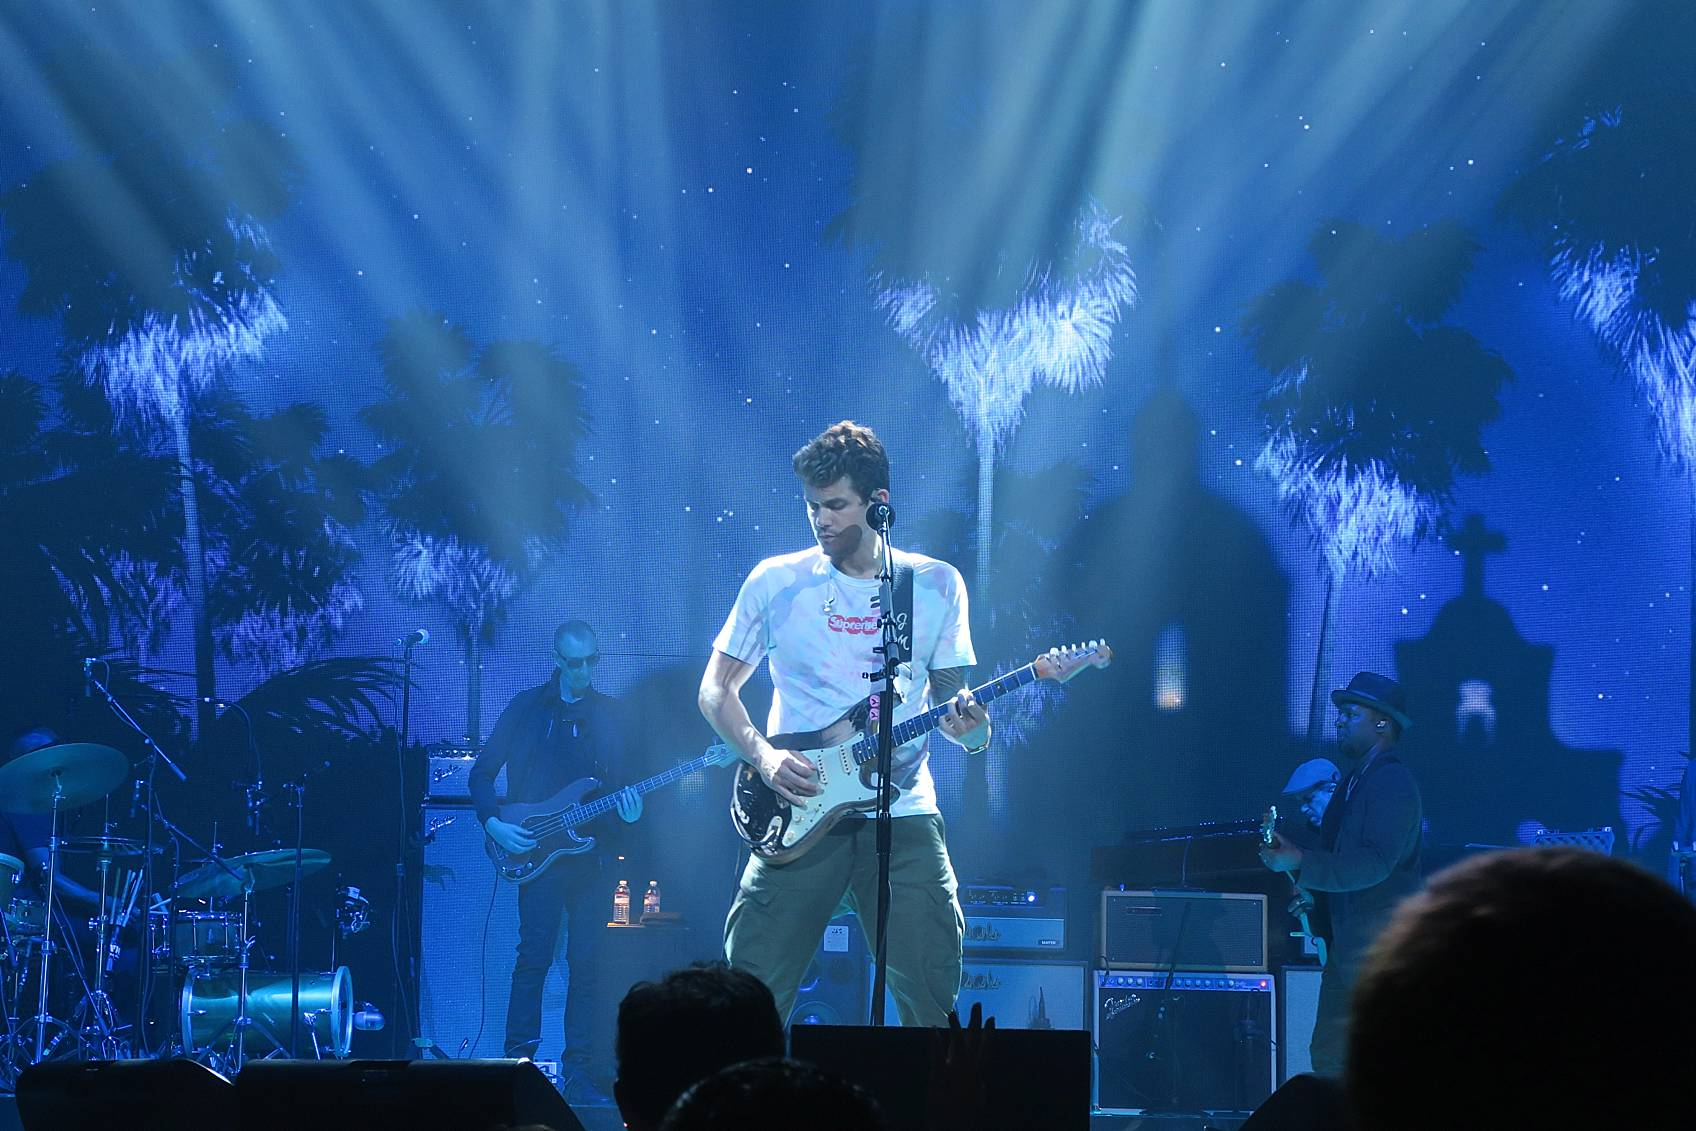 John Mayer performing in Phoenix on stage for his The Search for Everything Tour several spotlights on him